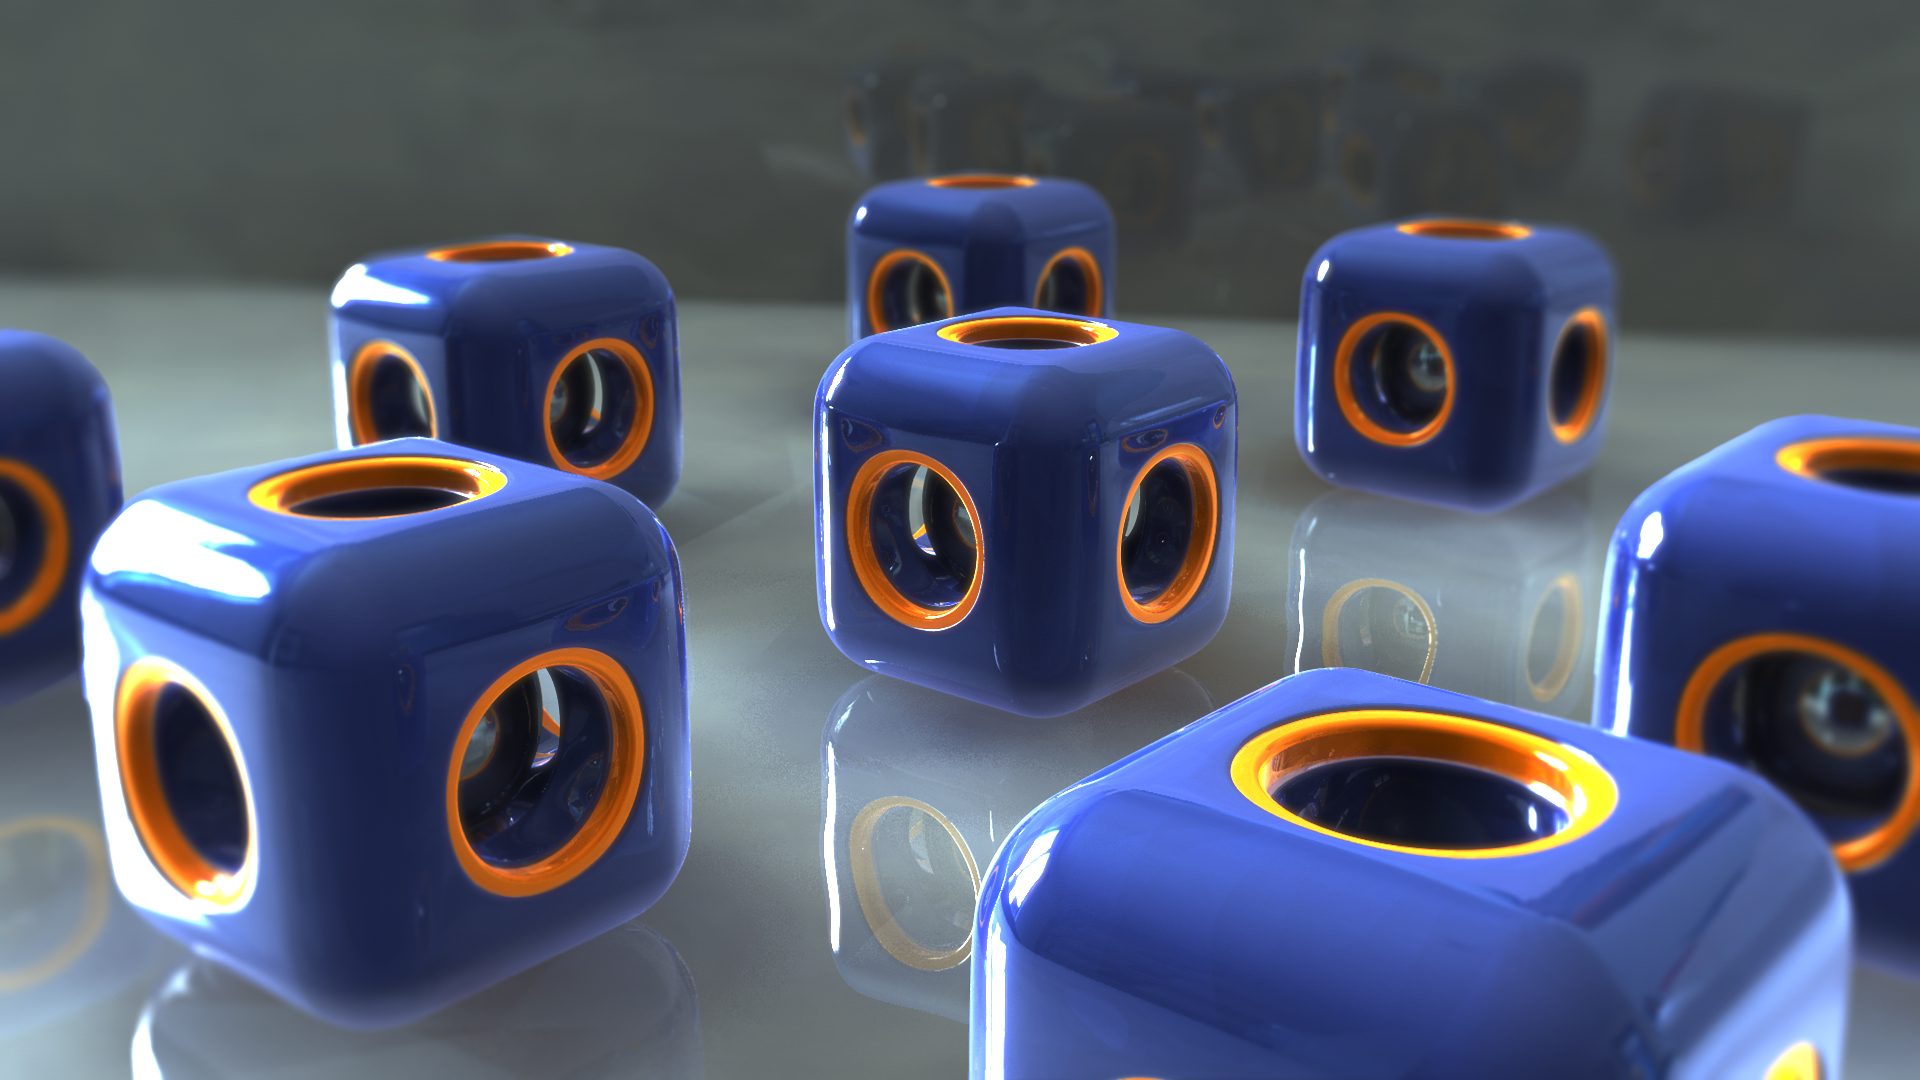 roundy dof coobes by Buchio